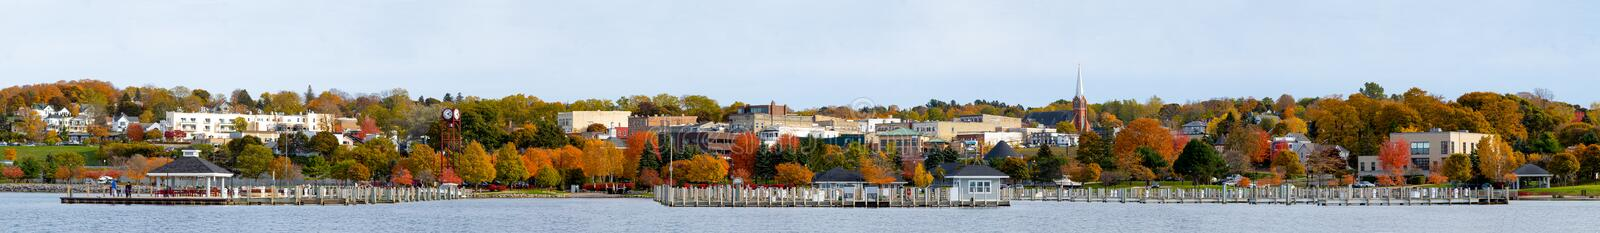 Petoskey. Bay during autumn, resort city in the state of Michigan, United States of America stock photo